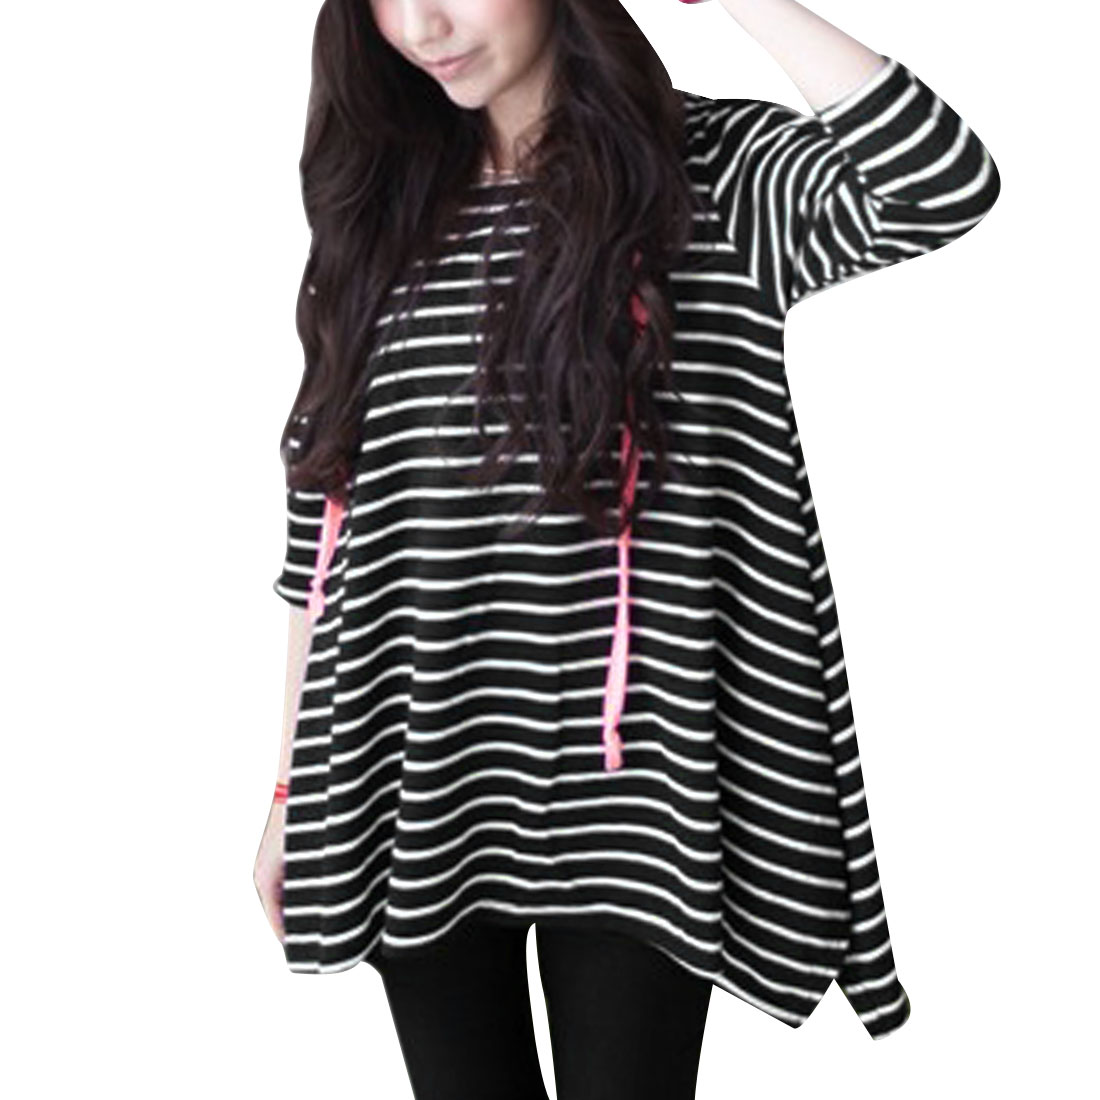 Women's Hooded Pullover 3/4 Sleeve Stripes Loose Stylish Top Shirt (Size S / 4)